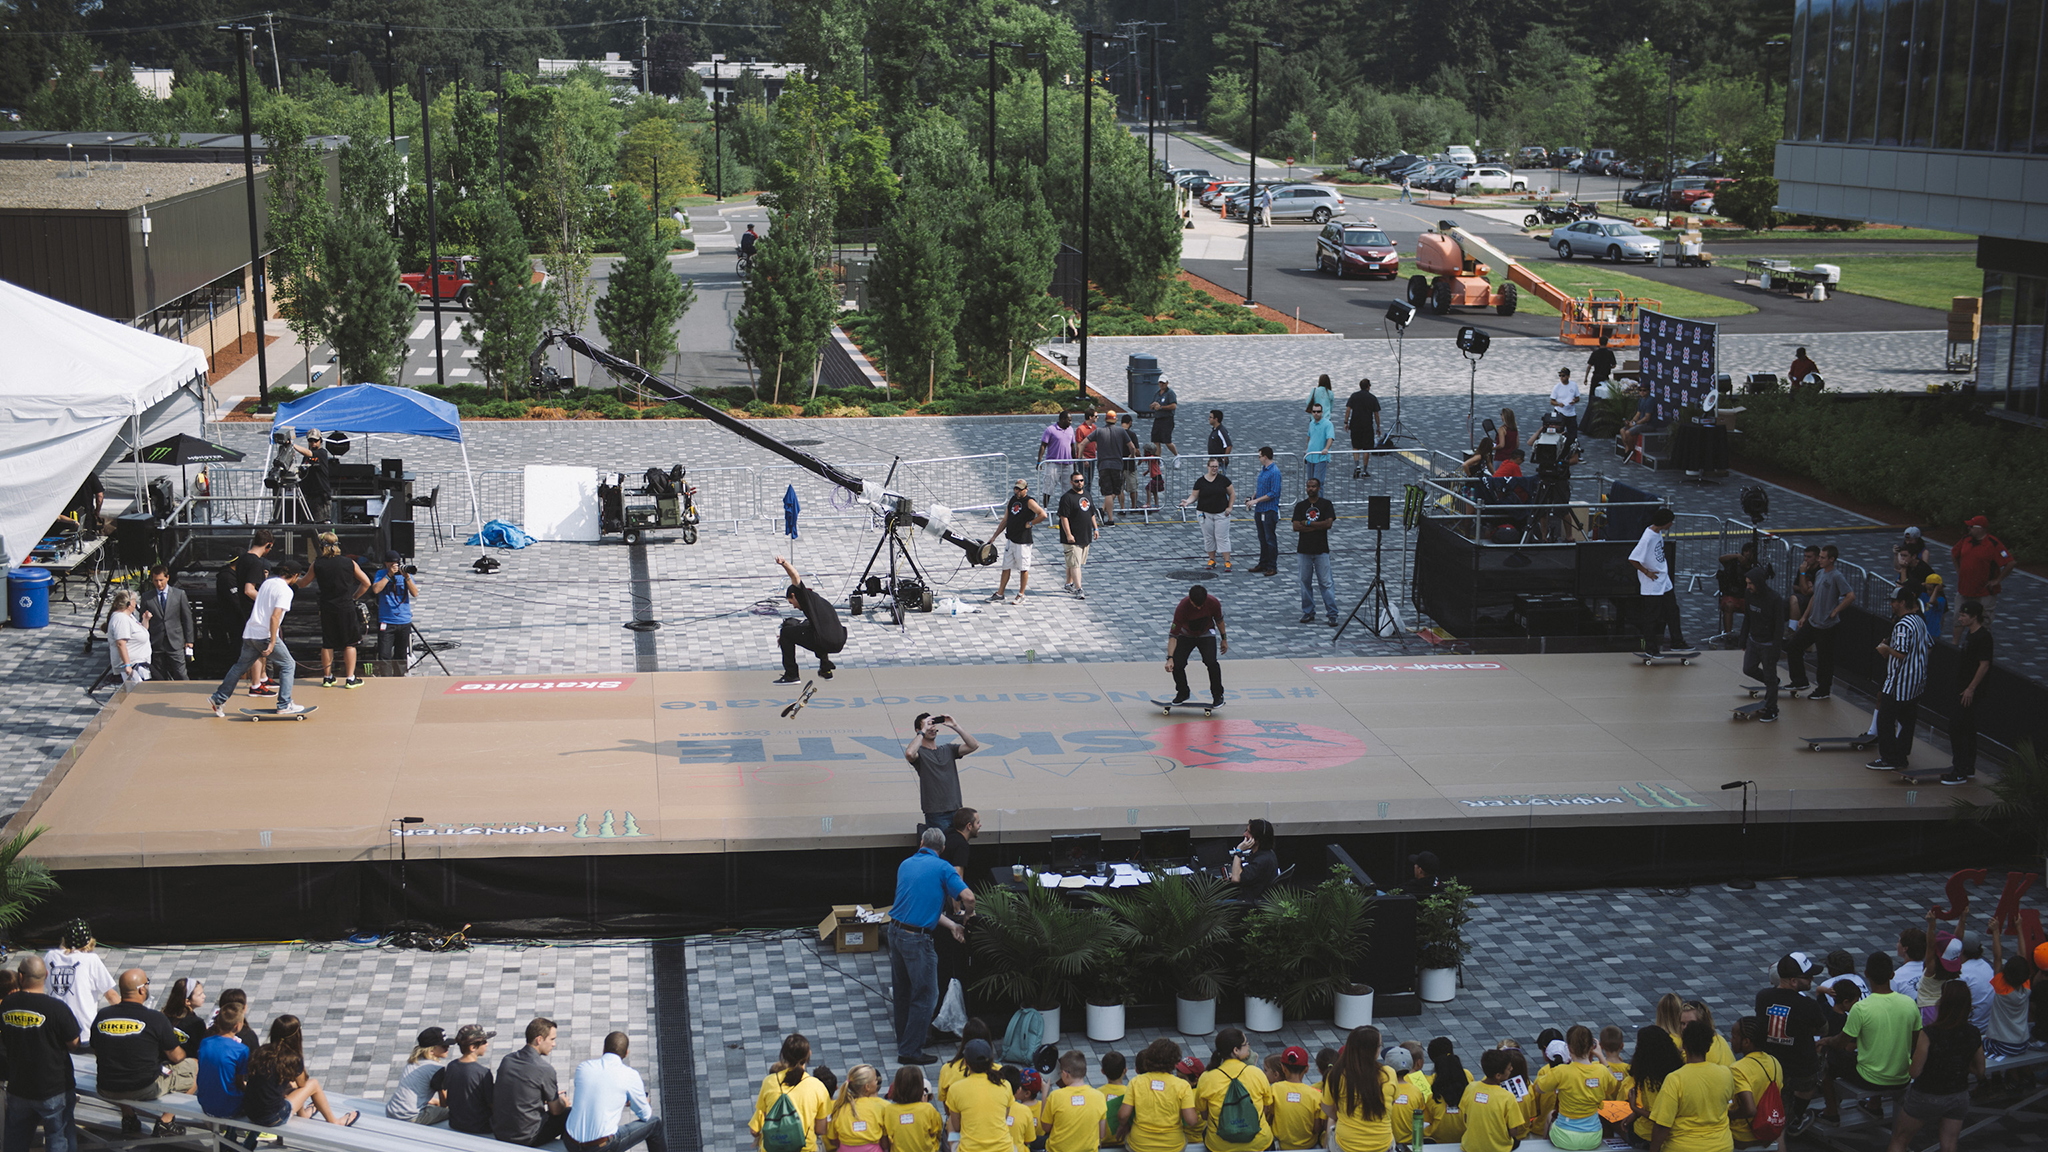 This was the scene from ESPN campus in Bristol, Connecticut for the inaugural World Of X Games Game of Skate. Eight of the world's best skateboarders were invited to compete in a head-to-head flat ground competition, and in between, randomness ensued. What follows is an inside look at a not-so-usual day at ESPN.